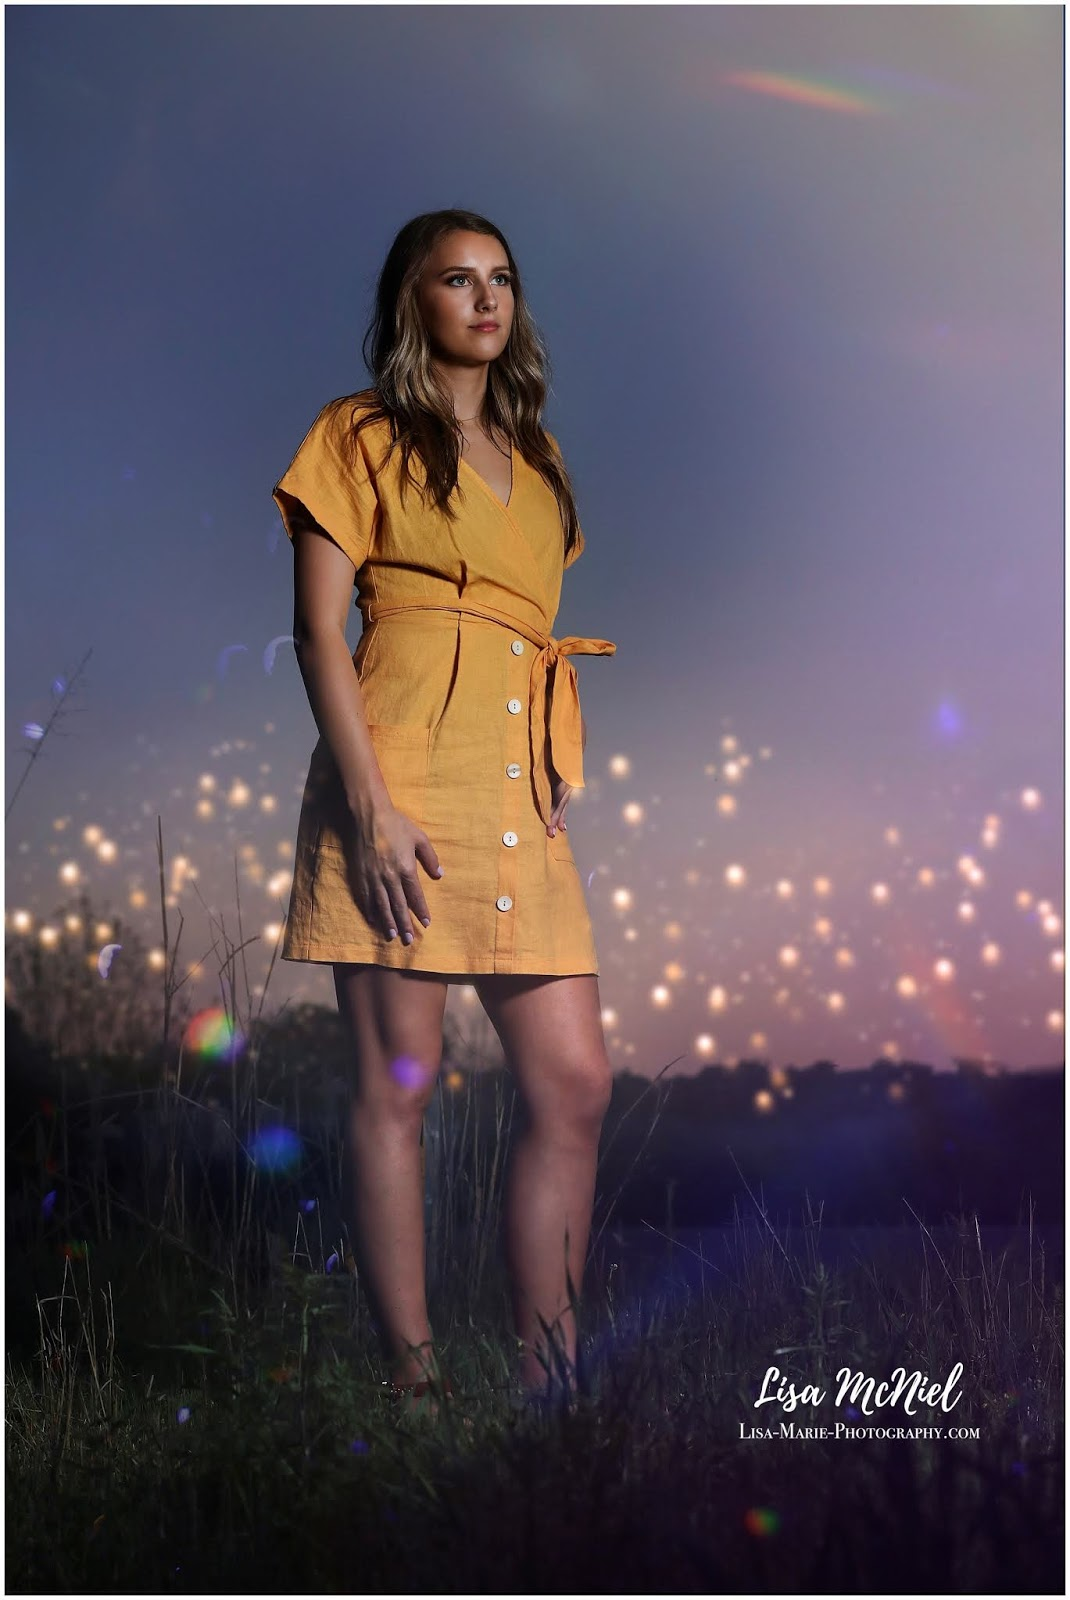 teen girl standing in grass at night with lights behind her